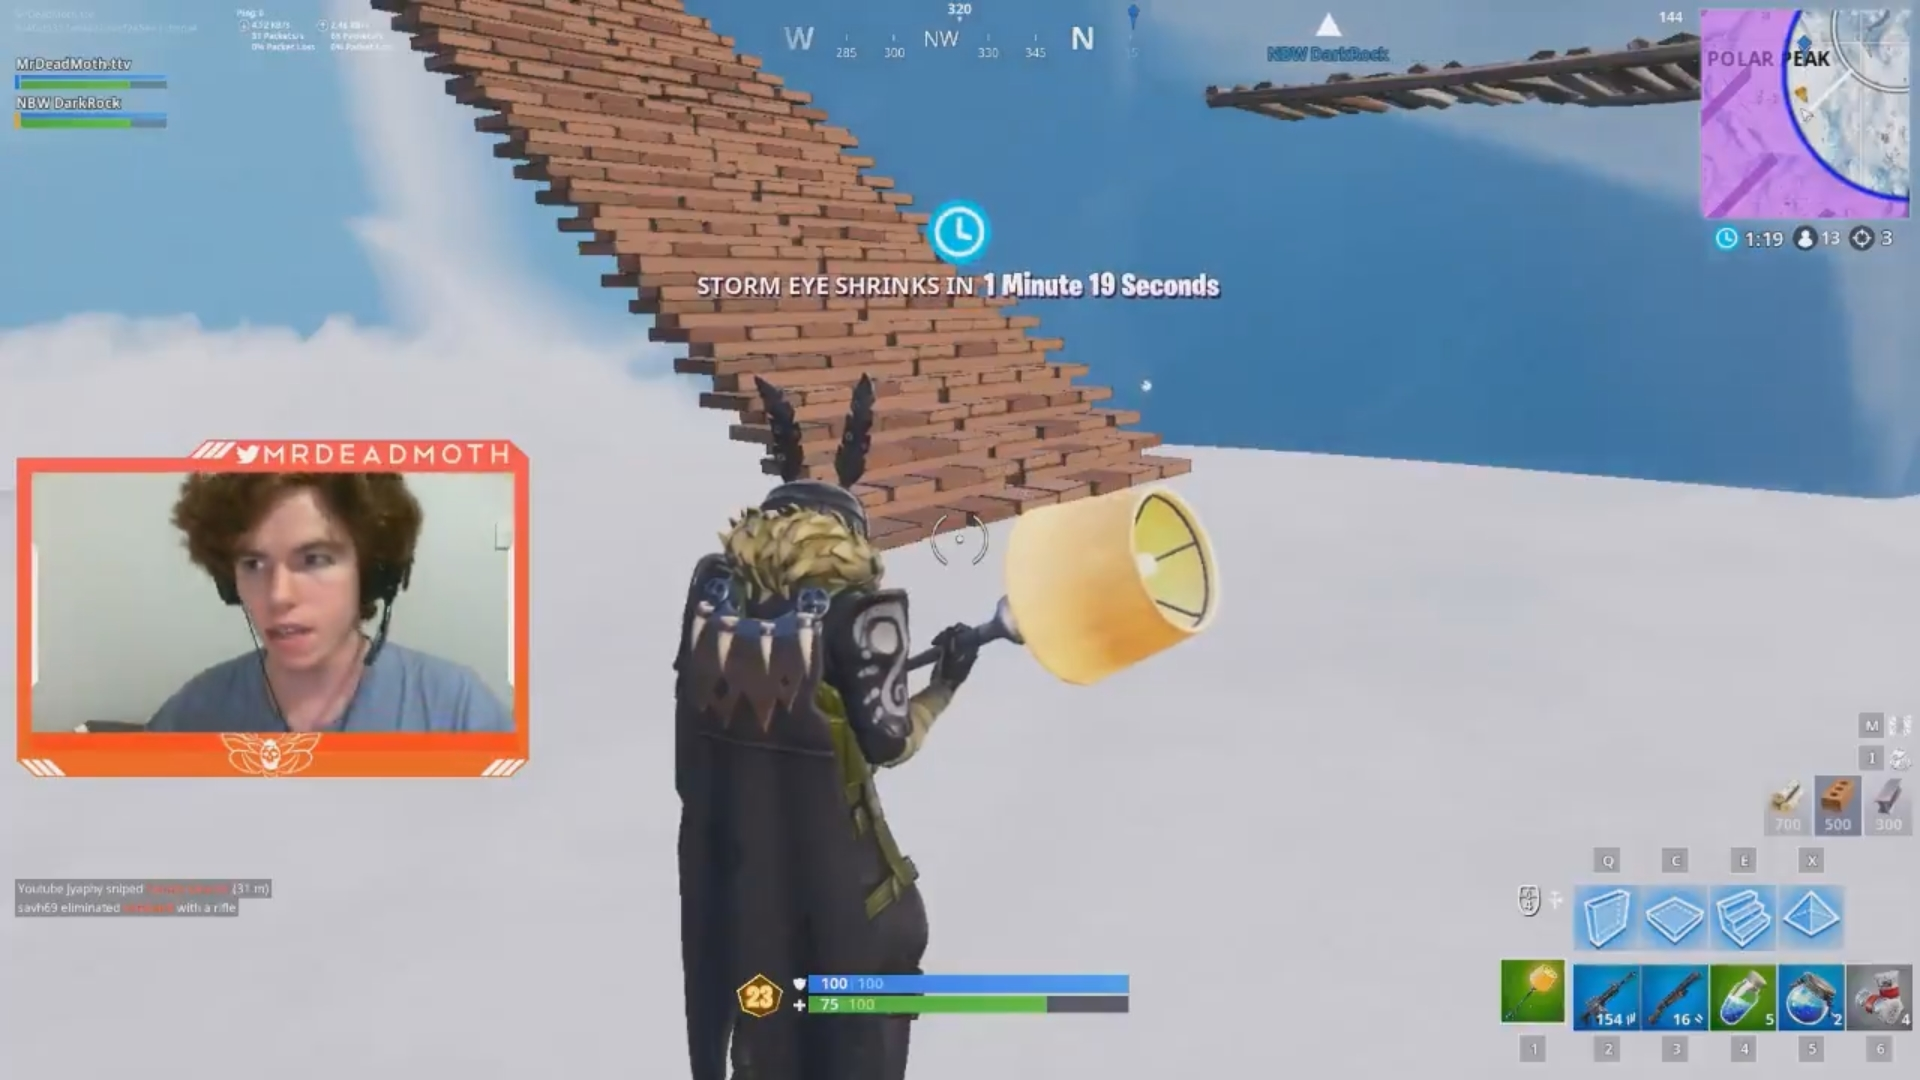 Sydney man charged with alleged assault of woman captured on Fortnite livestream